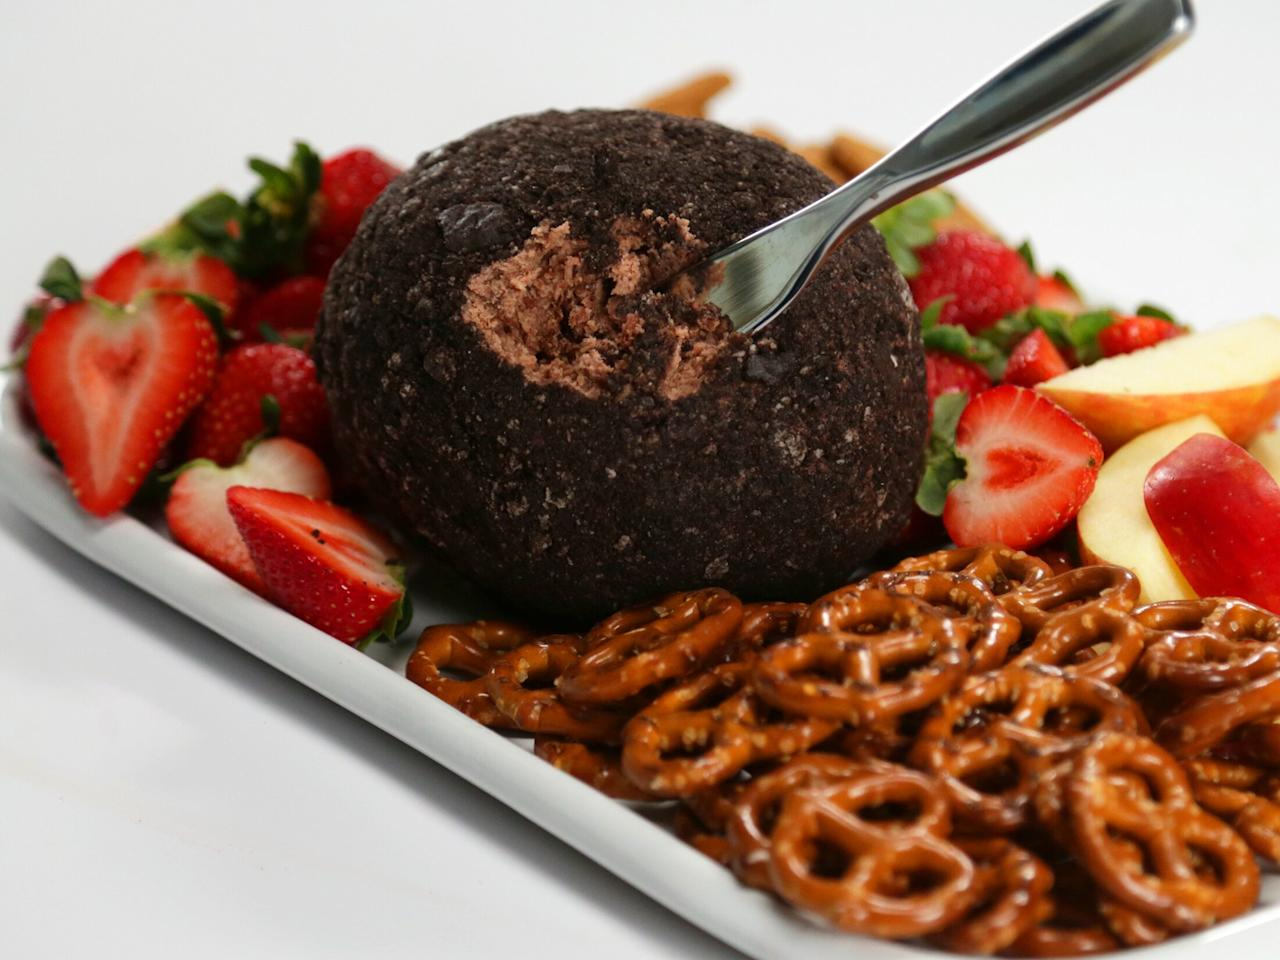 """<p>For an easy, no-bake treat that everyone will love, look no further than this decadent and chocolatey dessert cheese ball. Serve with dippers like strawberries, apple slices, and pretzels. It's like an easy-to-make (and easy-to-share) """"deconstructed"""" take on chocolate cheesecake.</p> <p><a href=""""https://www.myrecipes.com/recipe/chocolate-cookie-butter-cheese-ball"""">Chocolate Cookie Butter Cheese Ball&nbsp; Recipe</a></p>"""